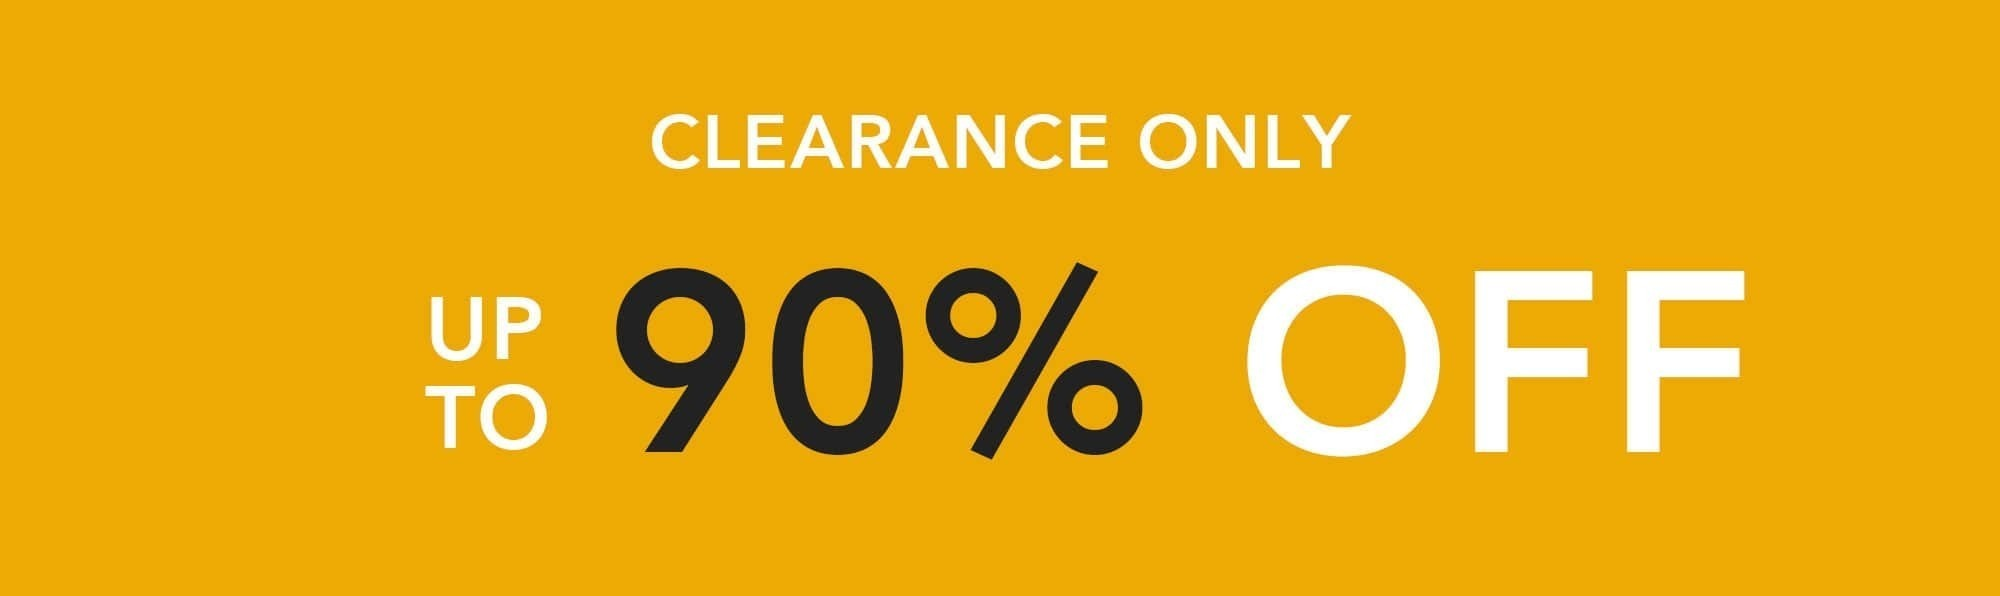 Clearance Only